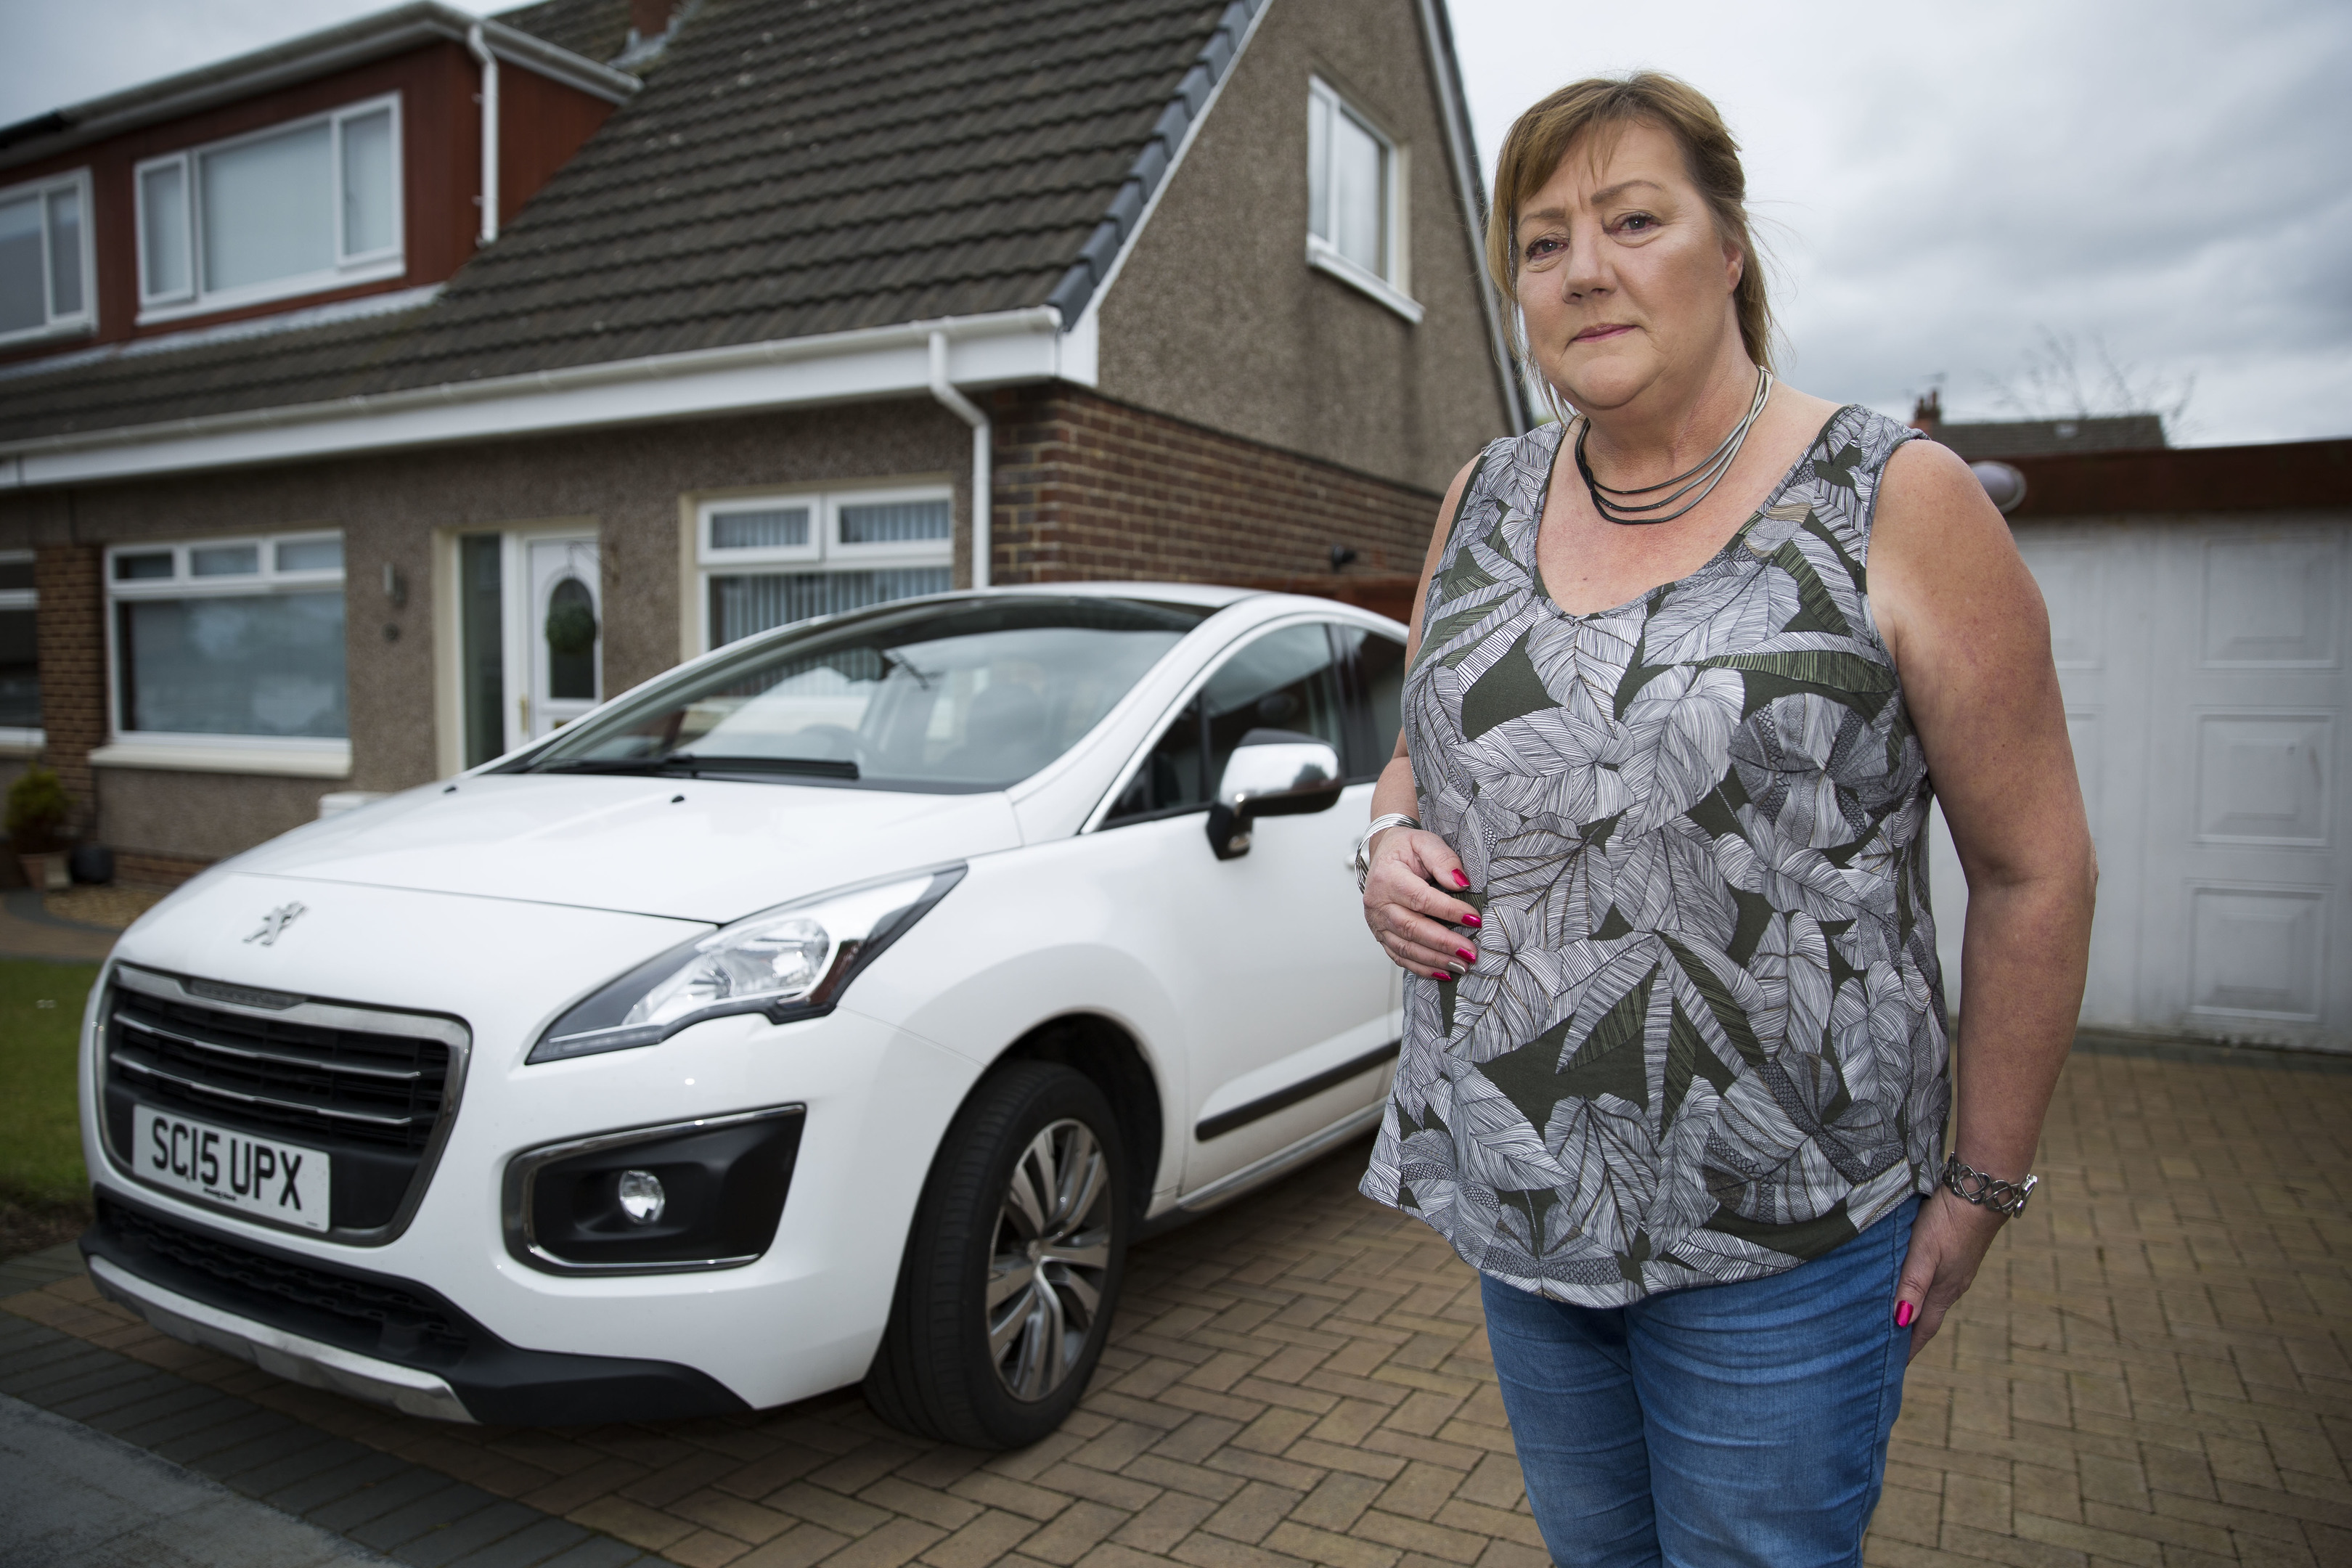 A snap reassessment of Jan's benefits ruled she did not need the car to live independently (Jamie Williamson)